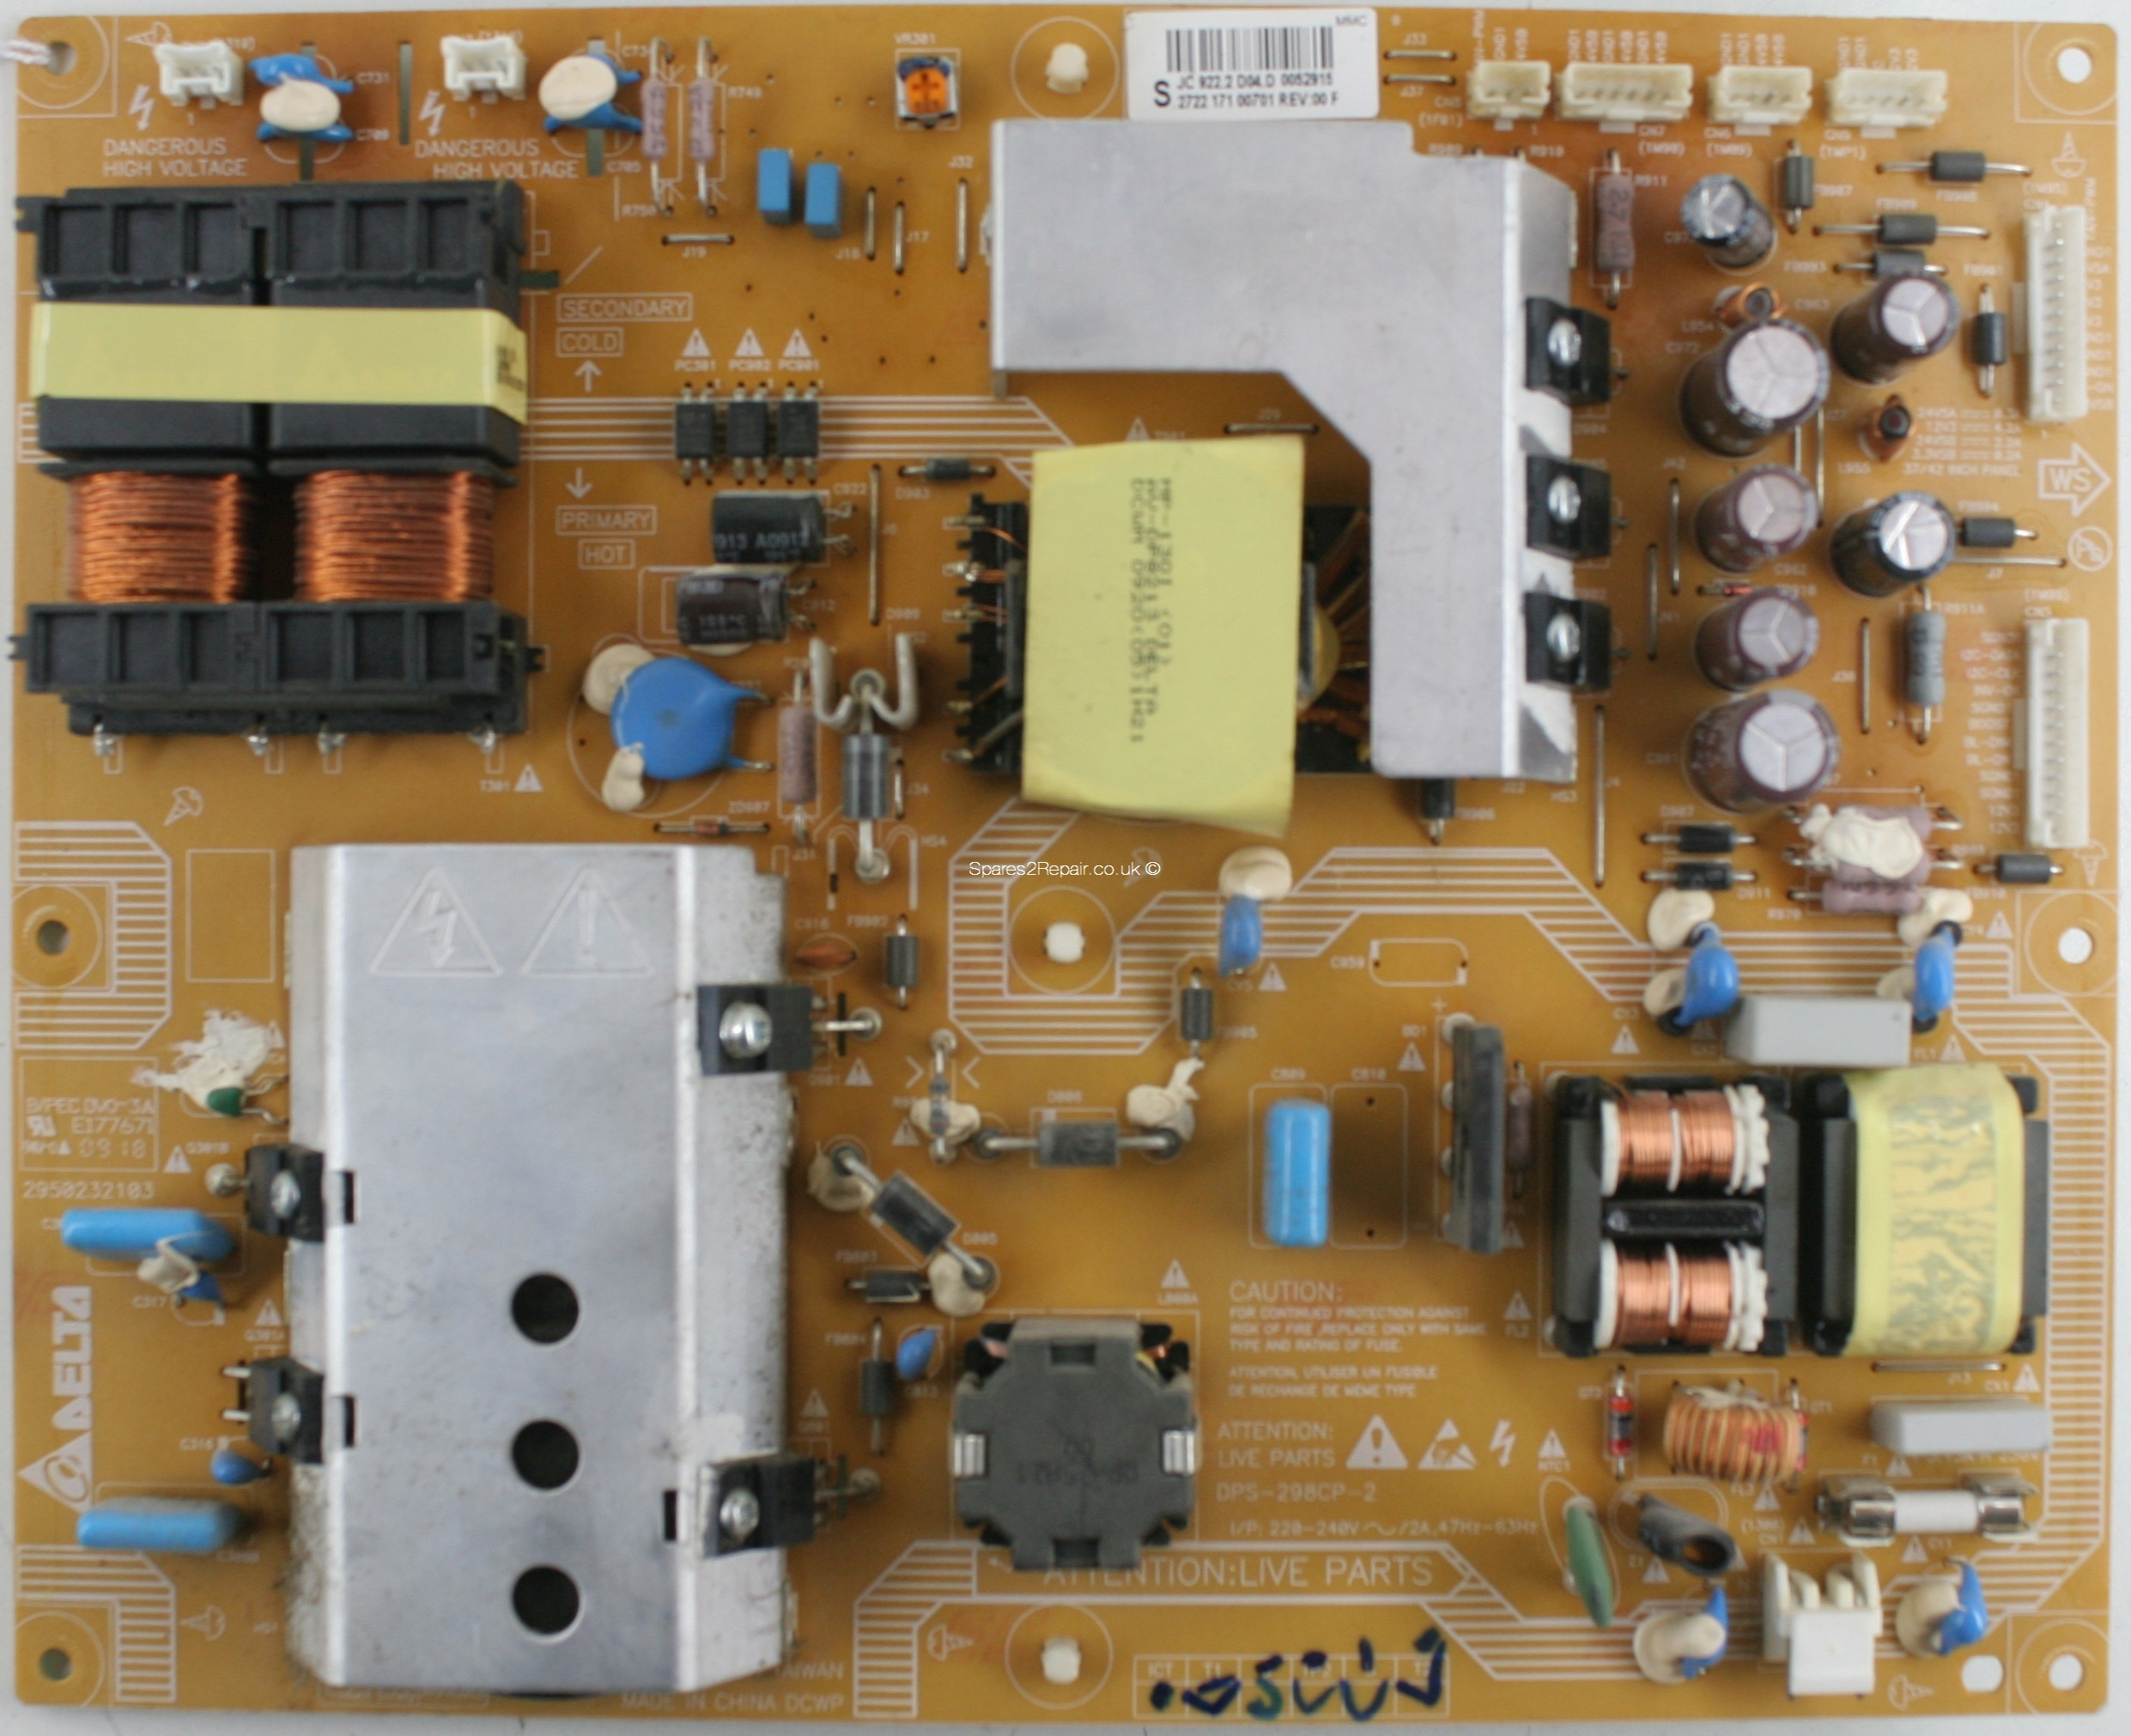 Philips 47PFL7404H - PSU - DPS-298CP-2 - 2950232103 - 2722 171 00701 - REV:00 F